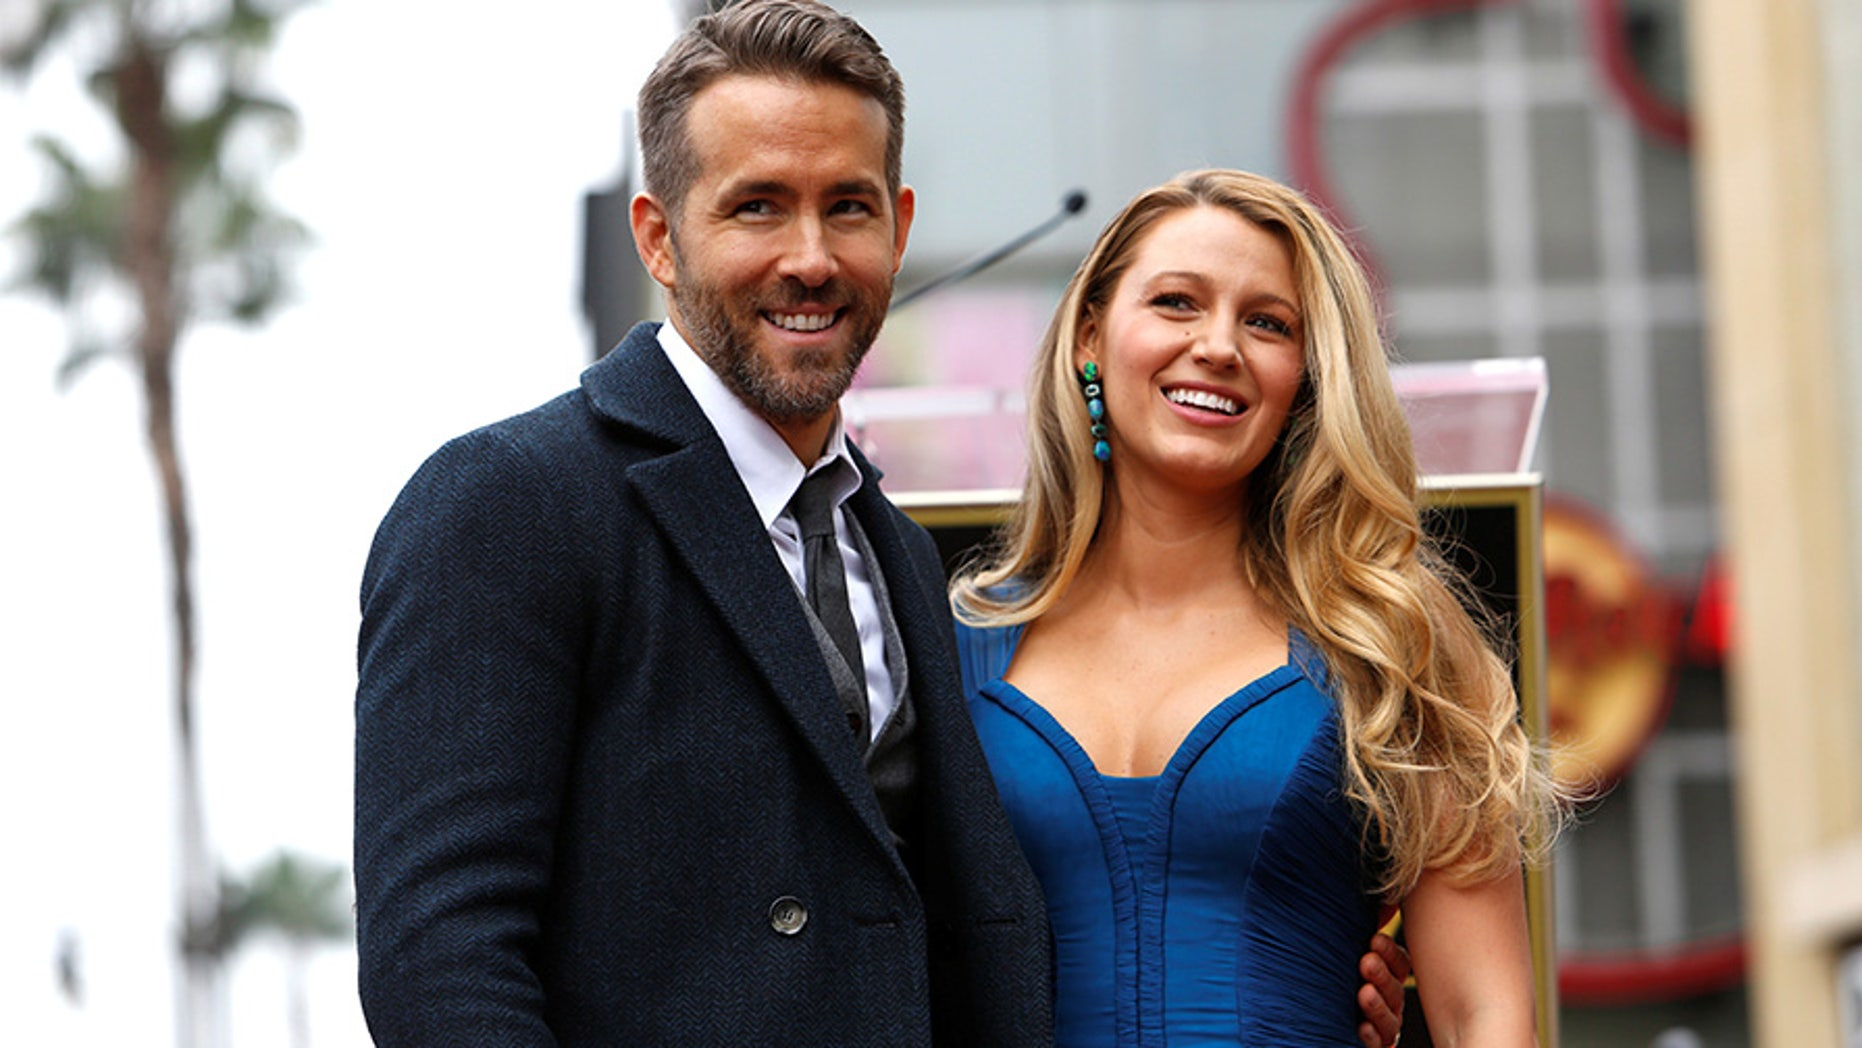 """Blake Lively, who is married to Ryan Reynolds, wrote about Anna Kendrick on Instagram Wednesday, jokingly asking, """"would it reaaaally count as cheating??"""""""